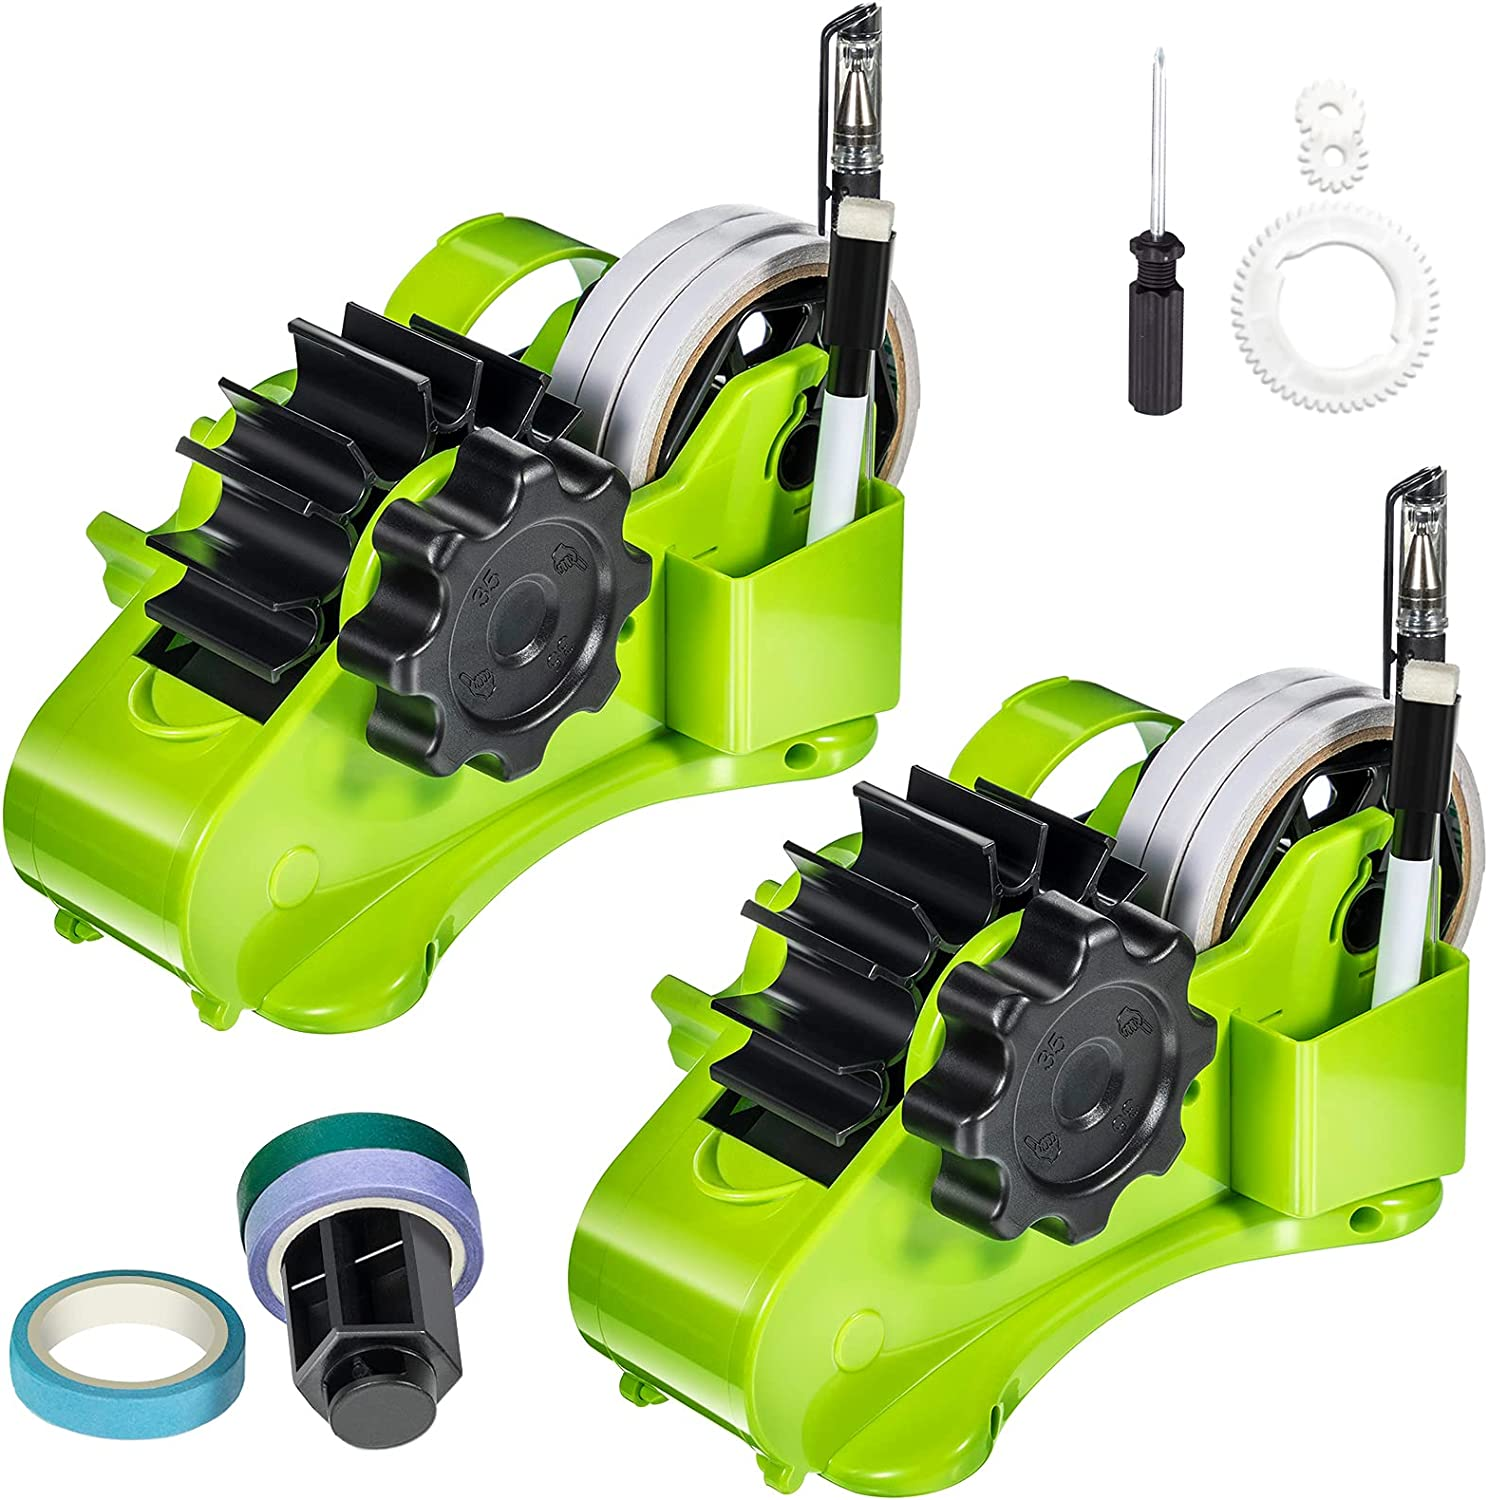 2 Pieces Semi-Automatic Desk Tape Multiple Dispenser Roll Ranking TOP10 San Diego Mall He Cut